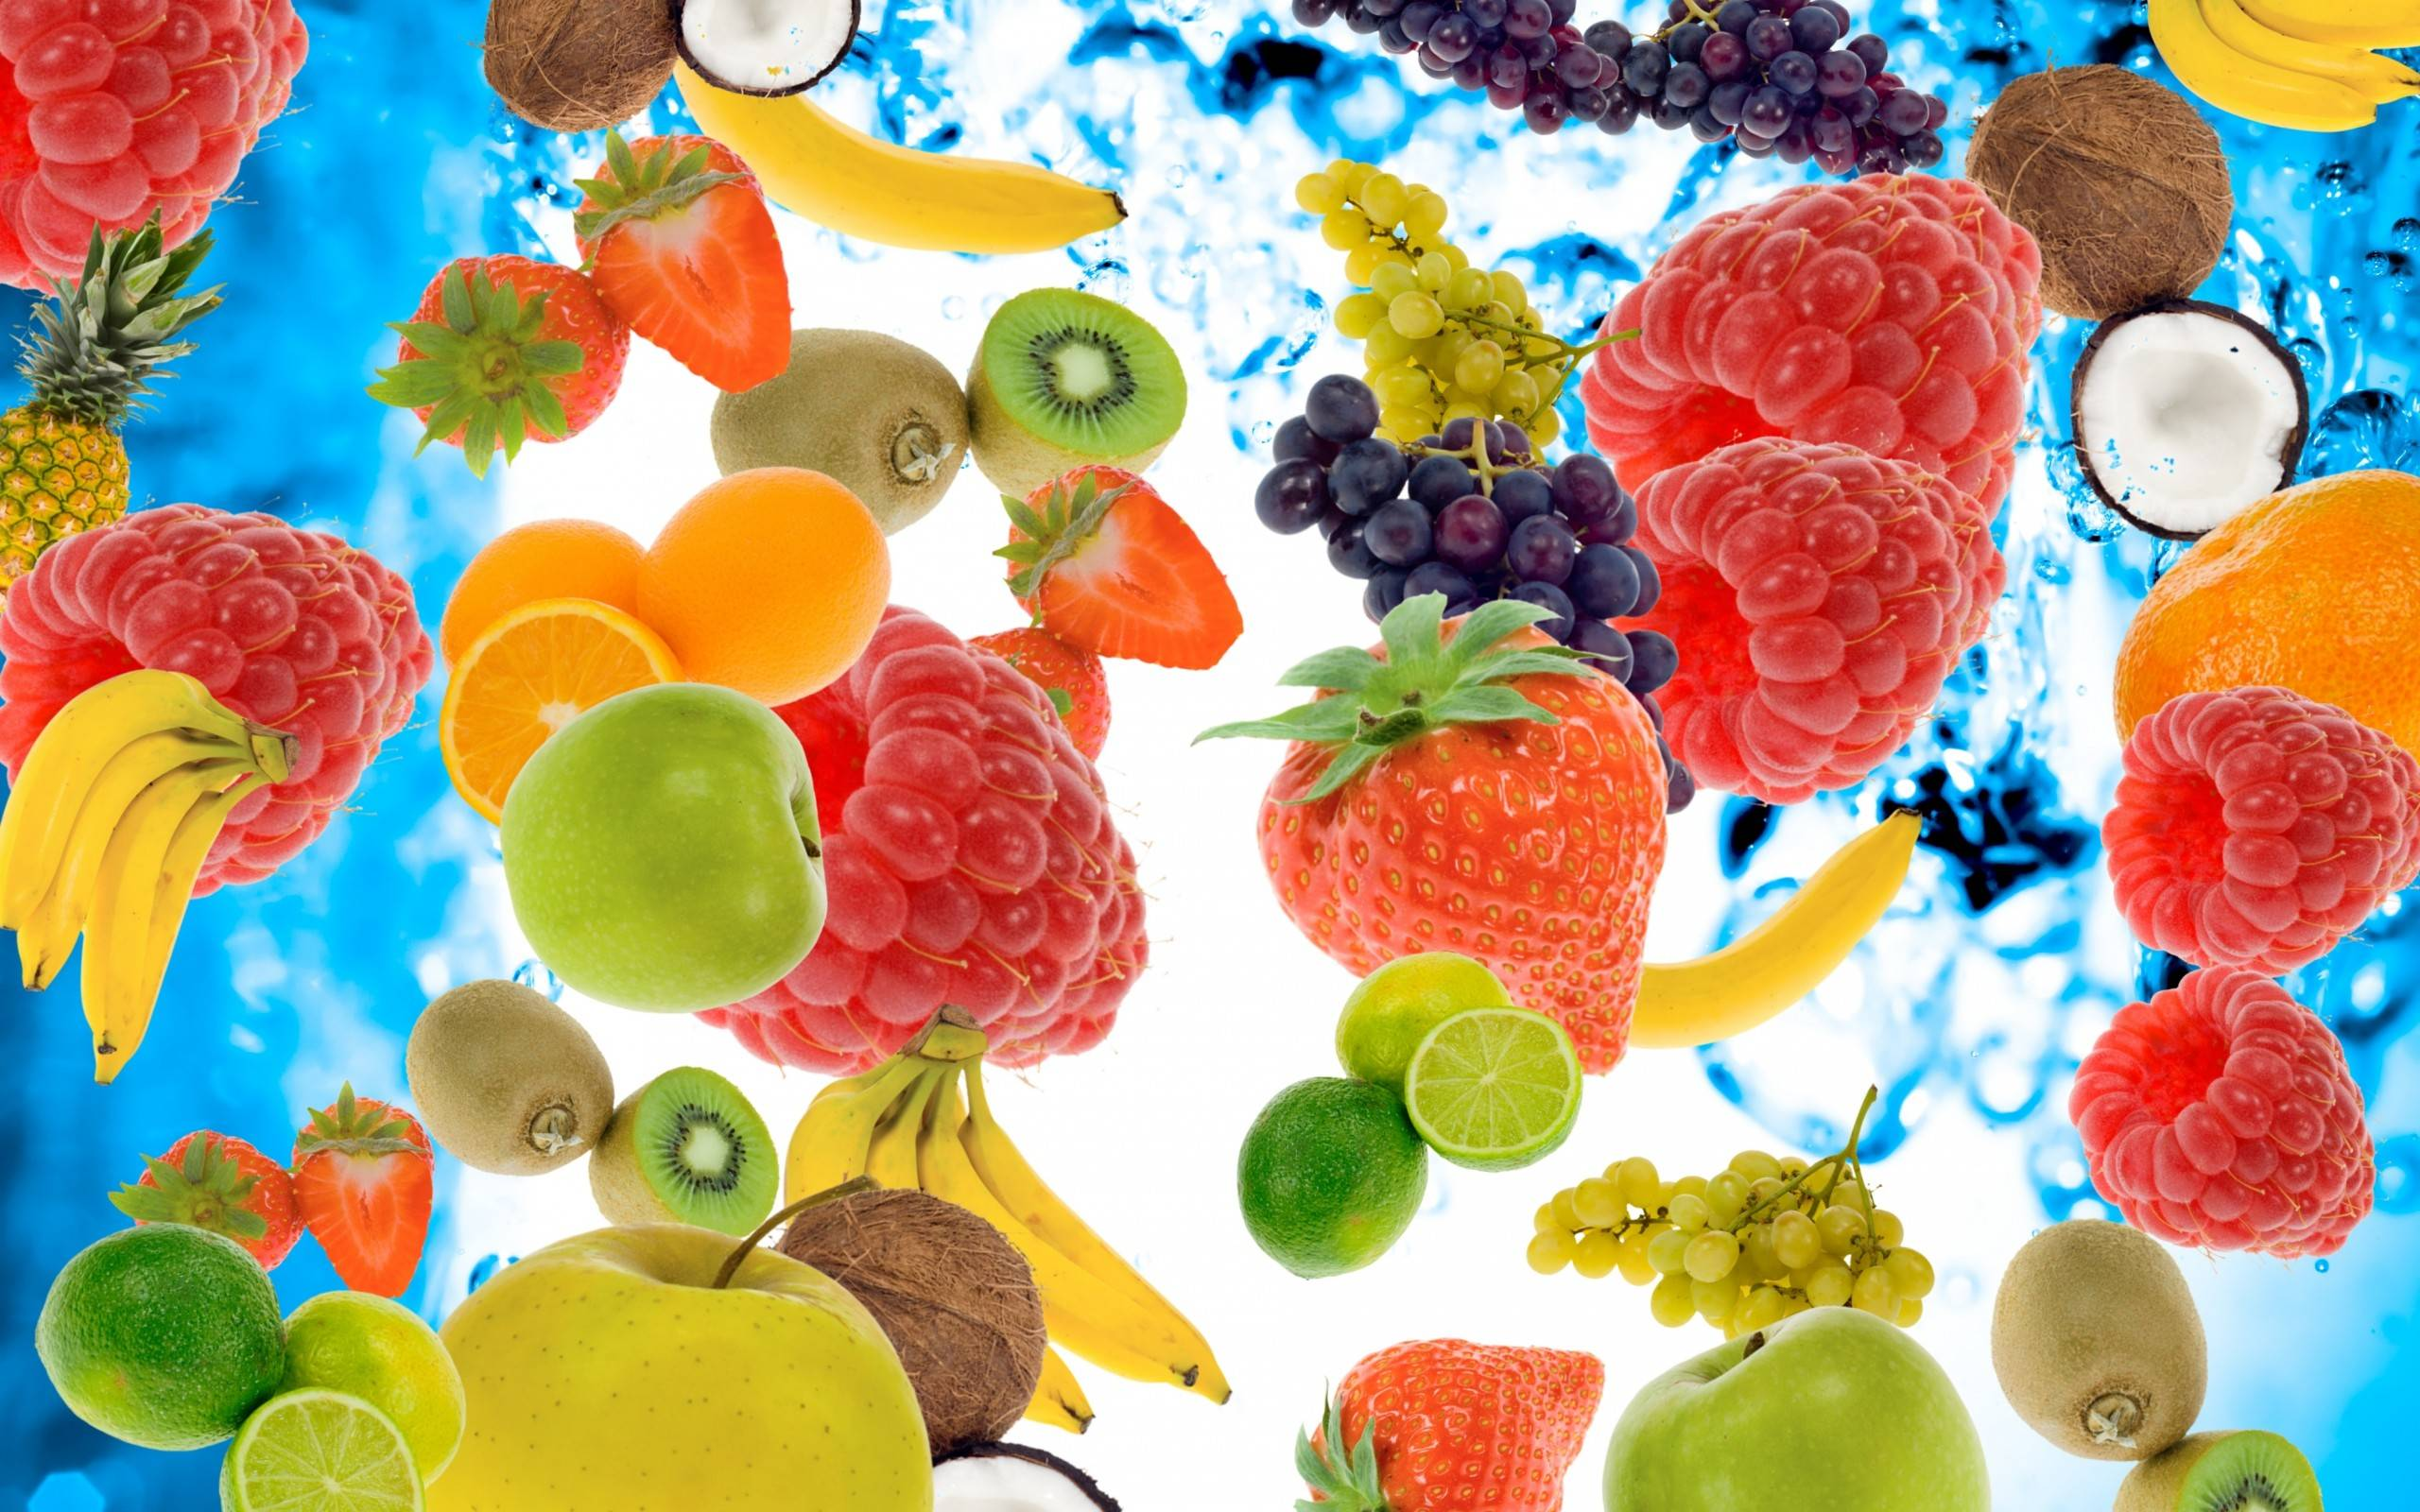 Fruits hd images - Fruit Wallpapers Full Hd Wallpaper Search